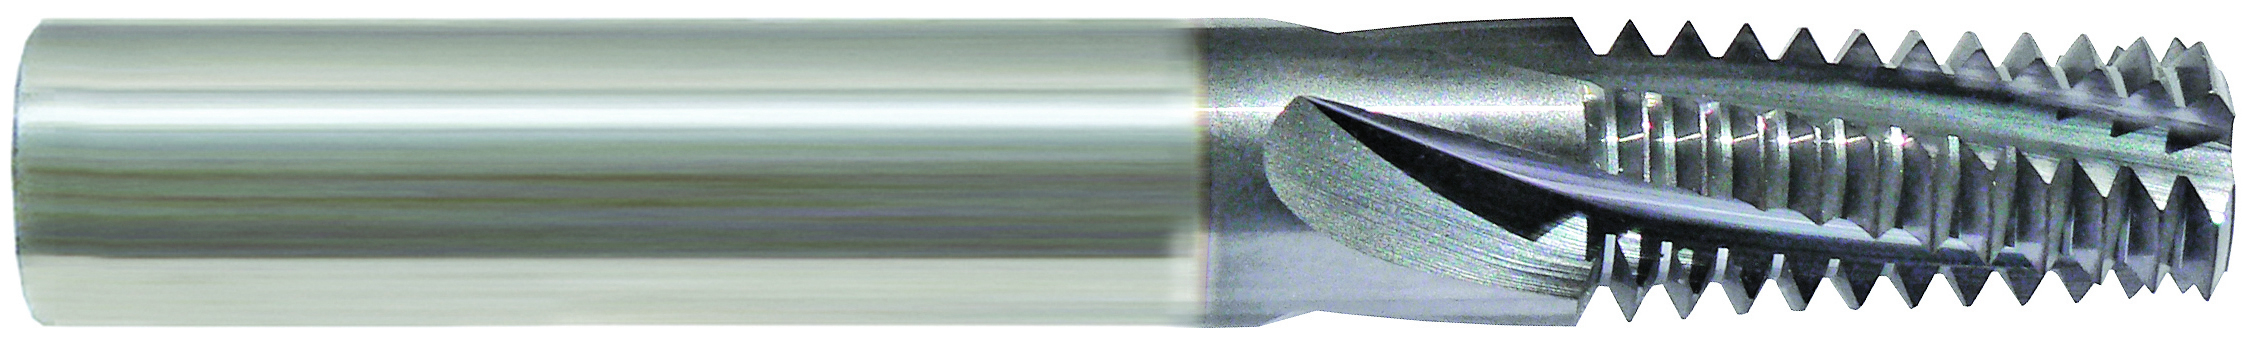 M24-3.00 MC SOLID CARBIDE THREAD MILL